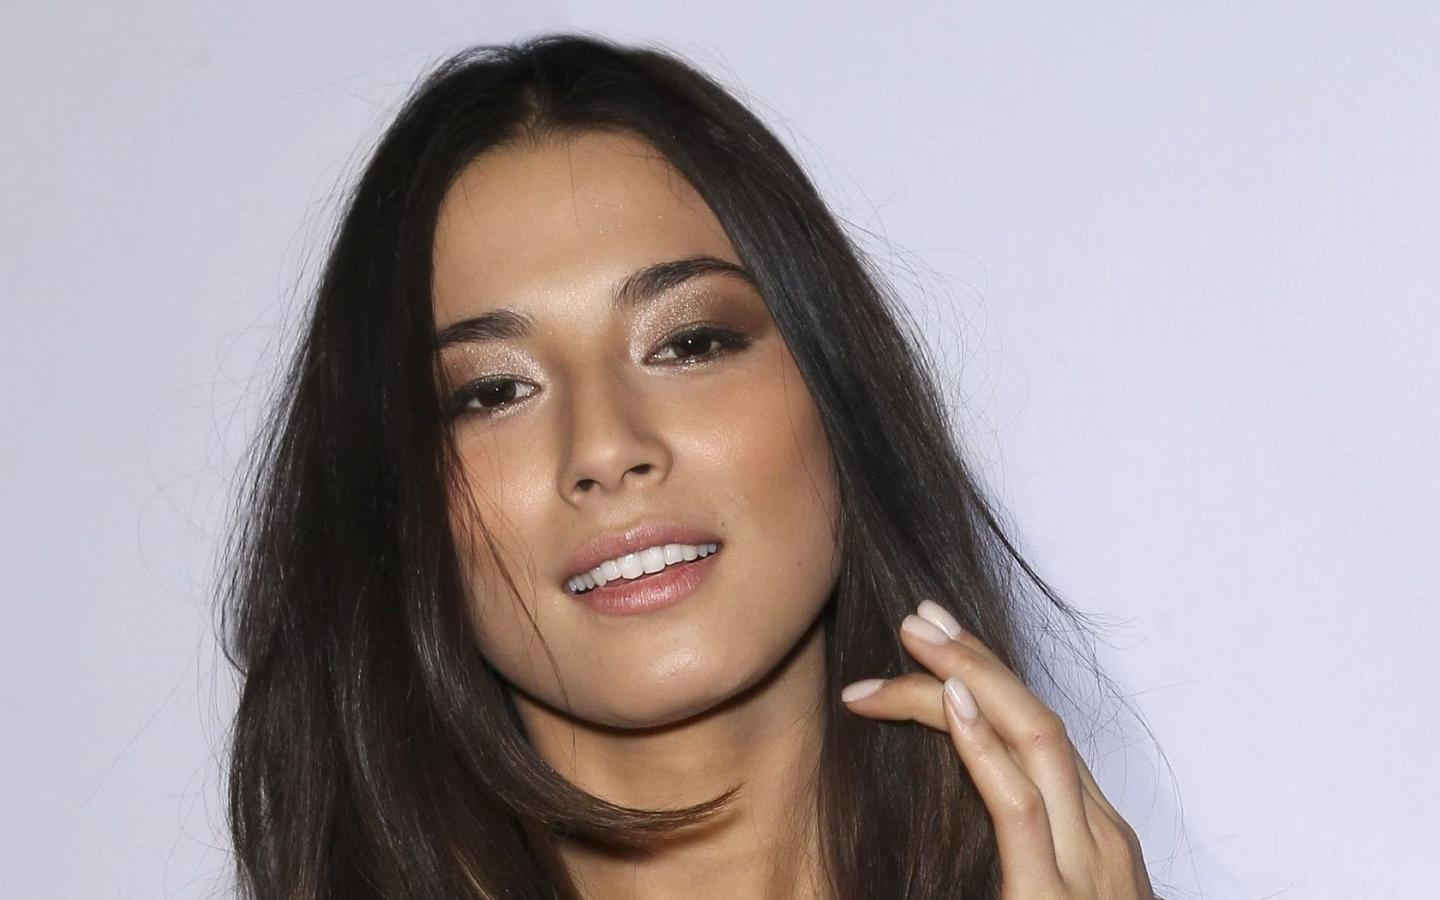 1440x900 - Jessica Gomes Wallpapers 15